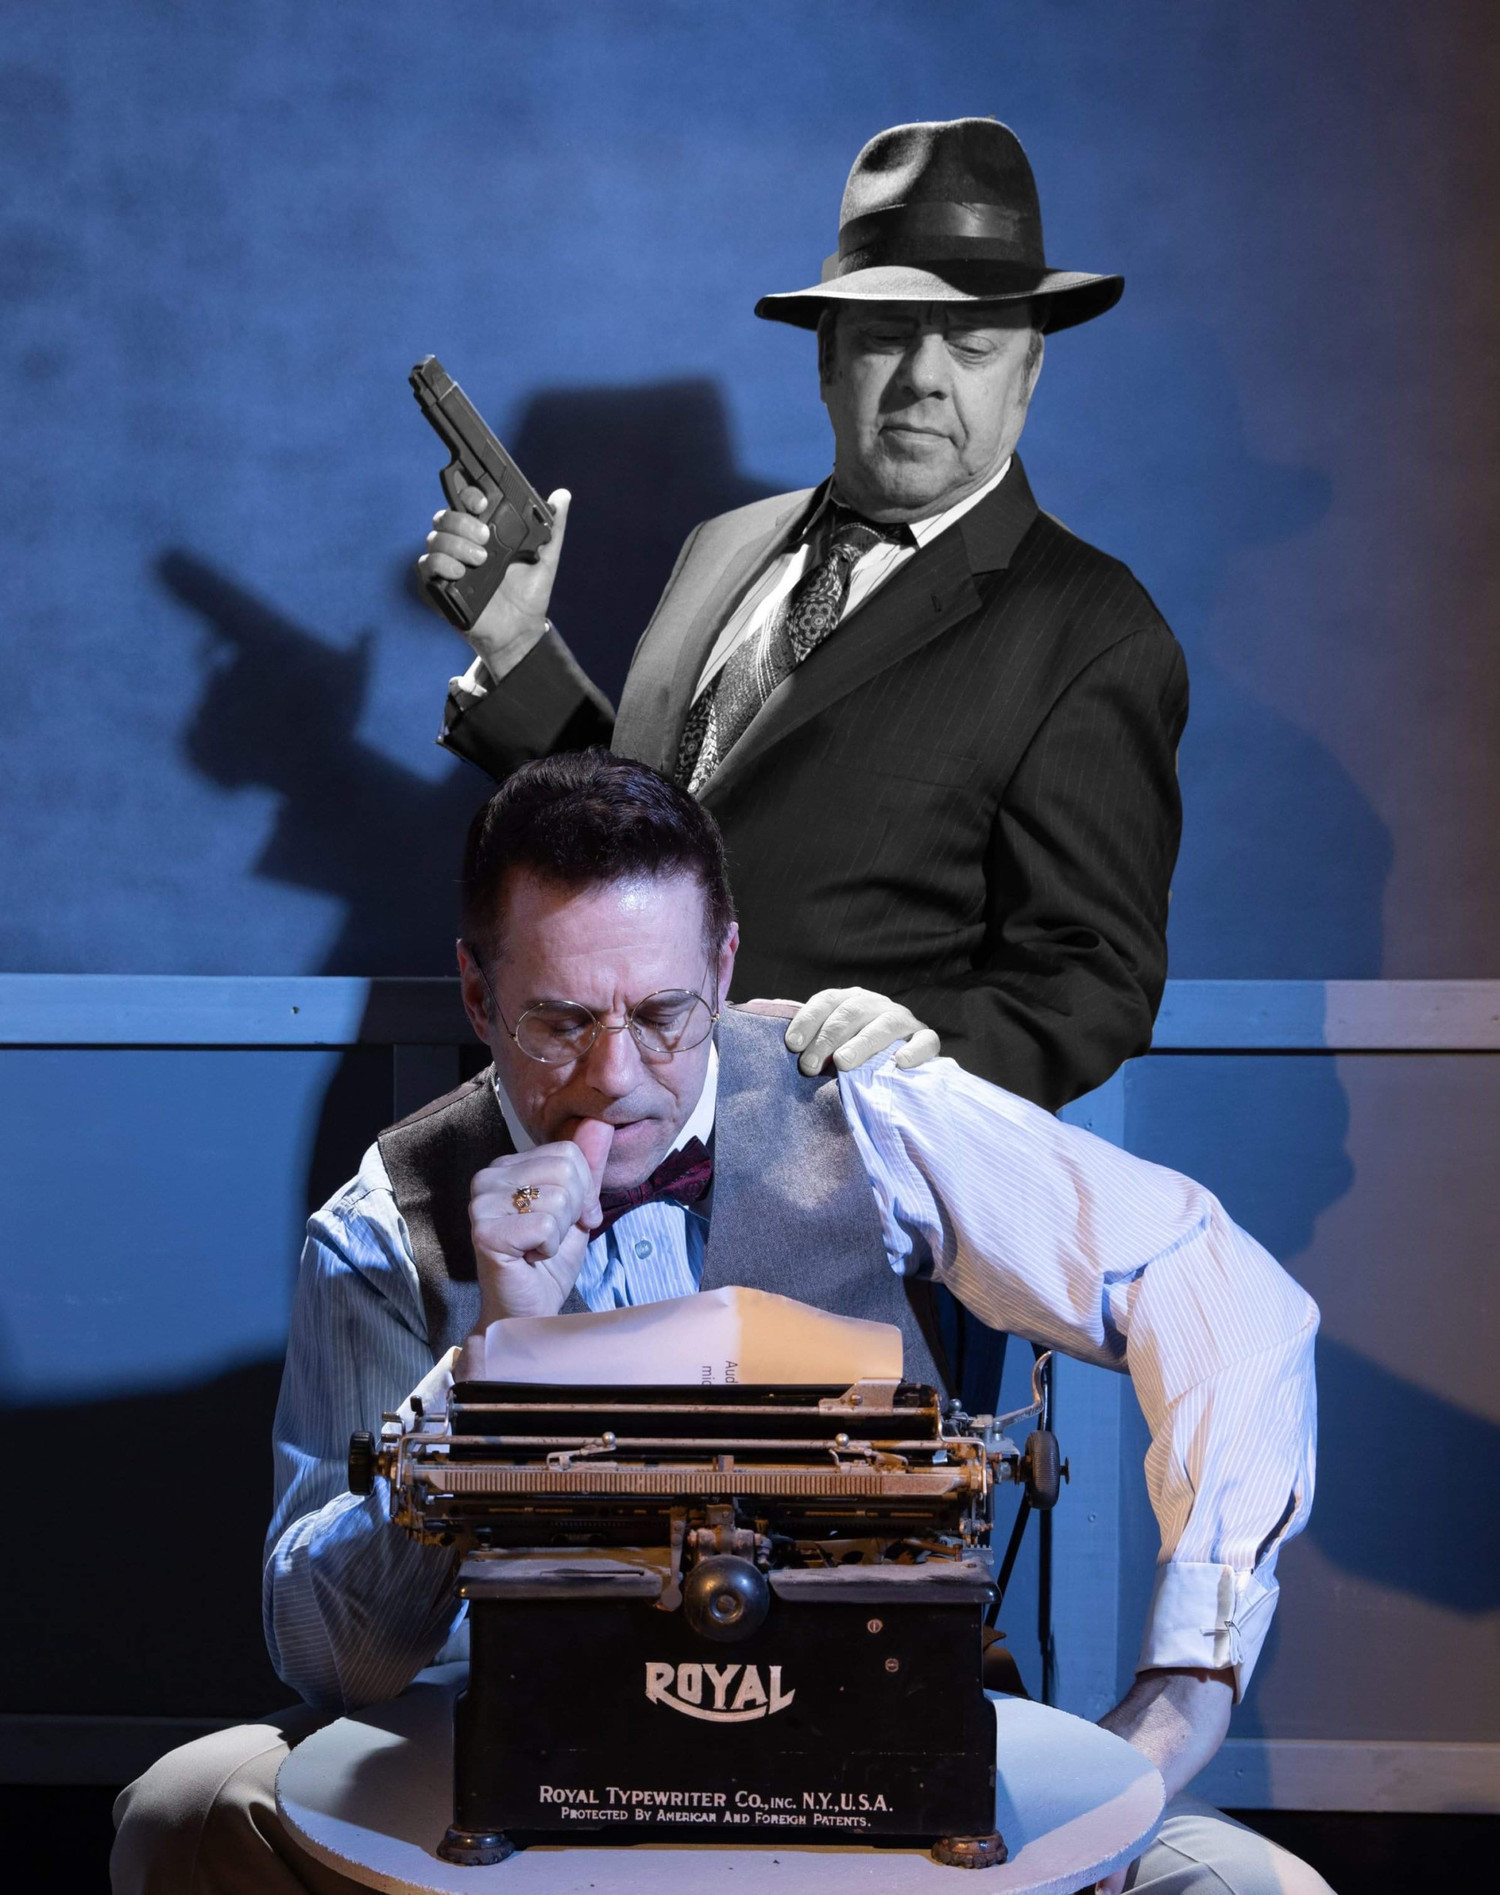 BWW Review: CITY OF ANGELS at THE ARTS AT ANGELORIA'S